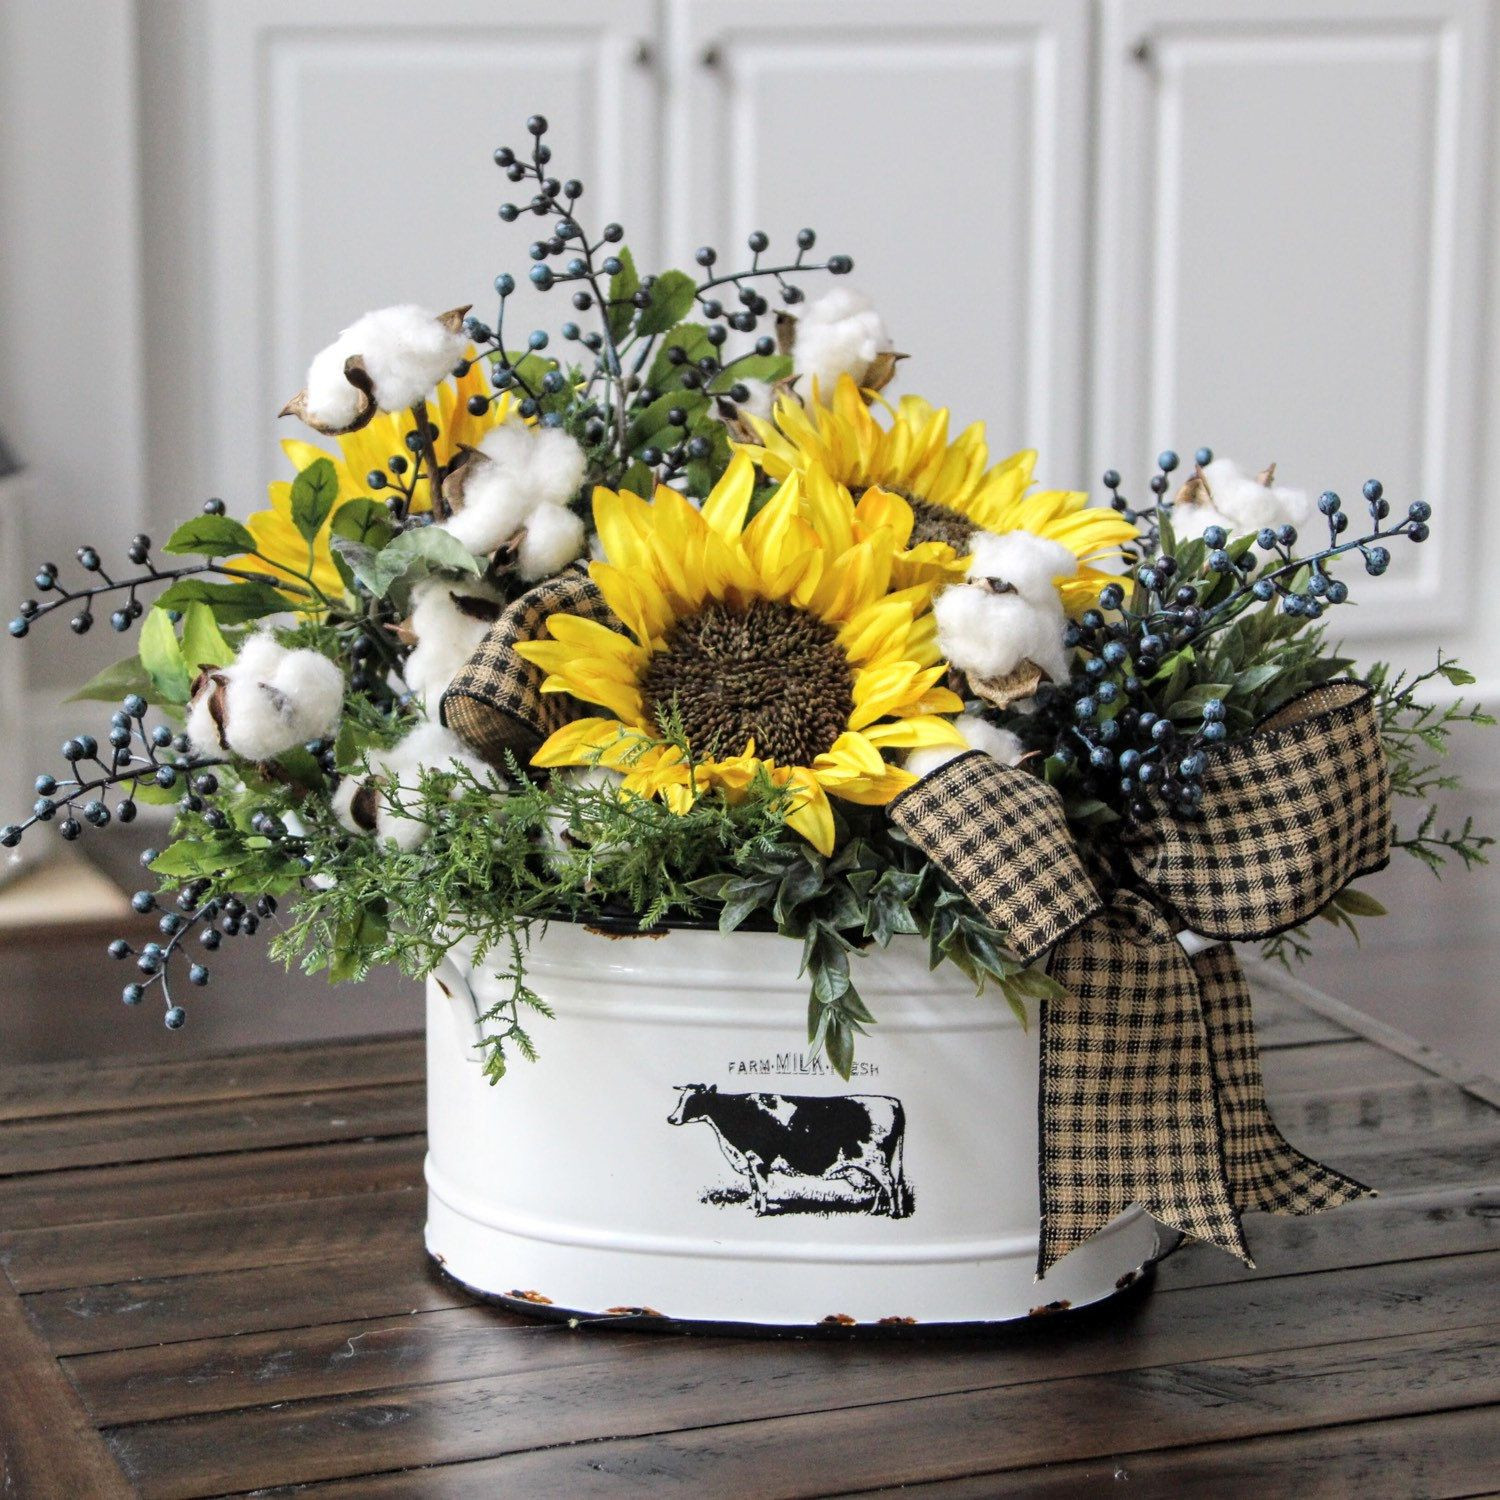 cotton in vase of attractive sunflower decor for kitchen or farmhouse decor country throughout attractive sunflower decor for kitchen or farmhouse decor country primitive floral arrangement cotton decor